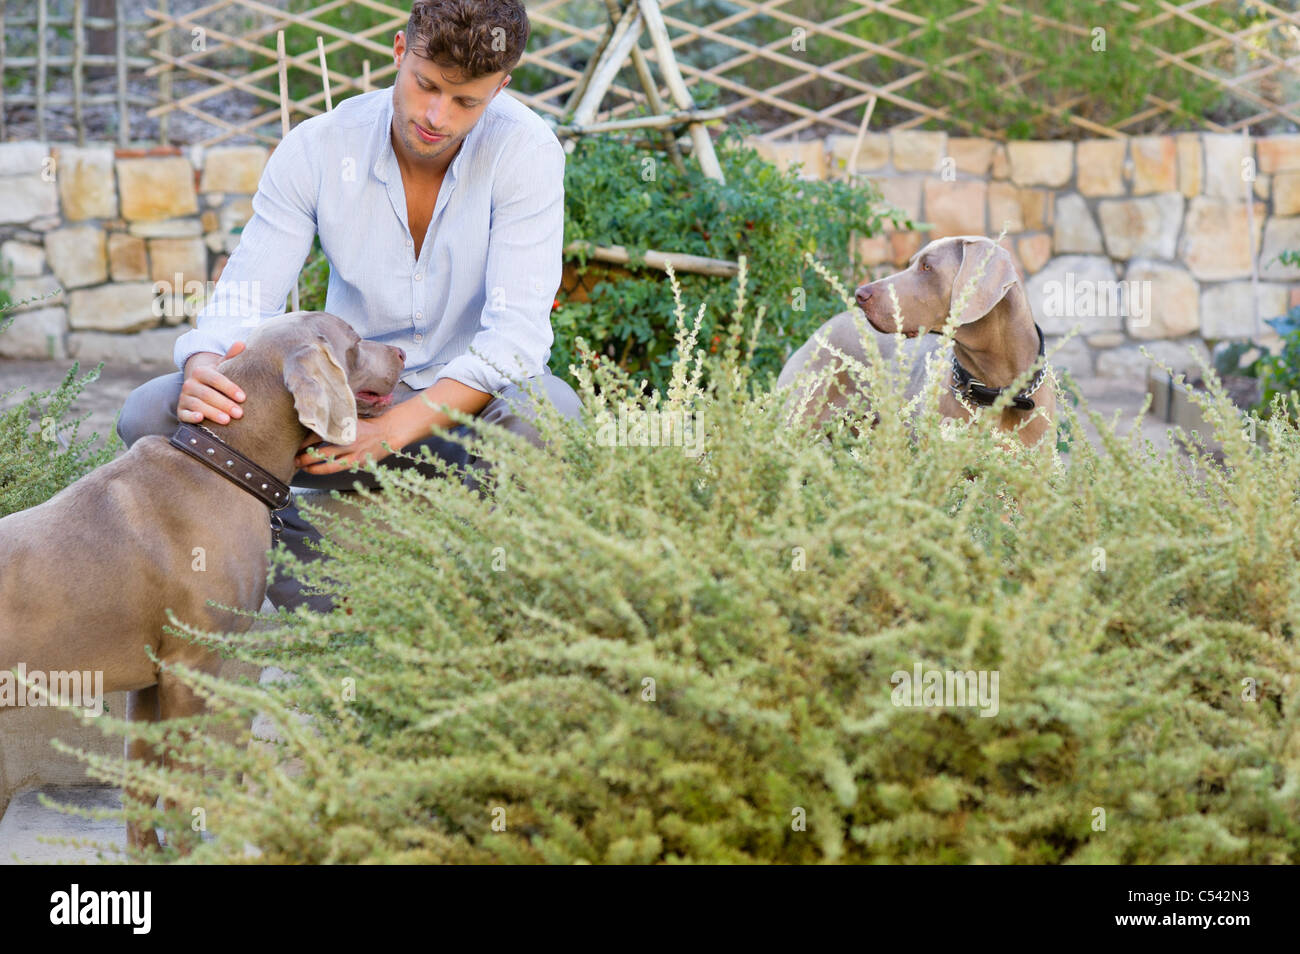 Man sitting with dogs in garden Stock Photo